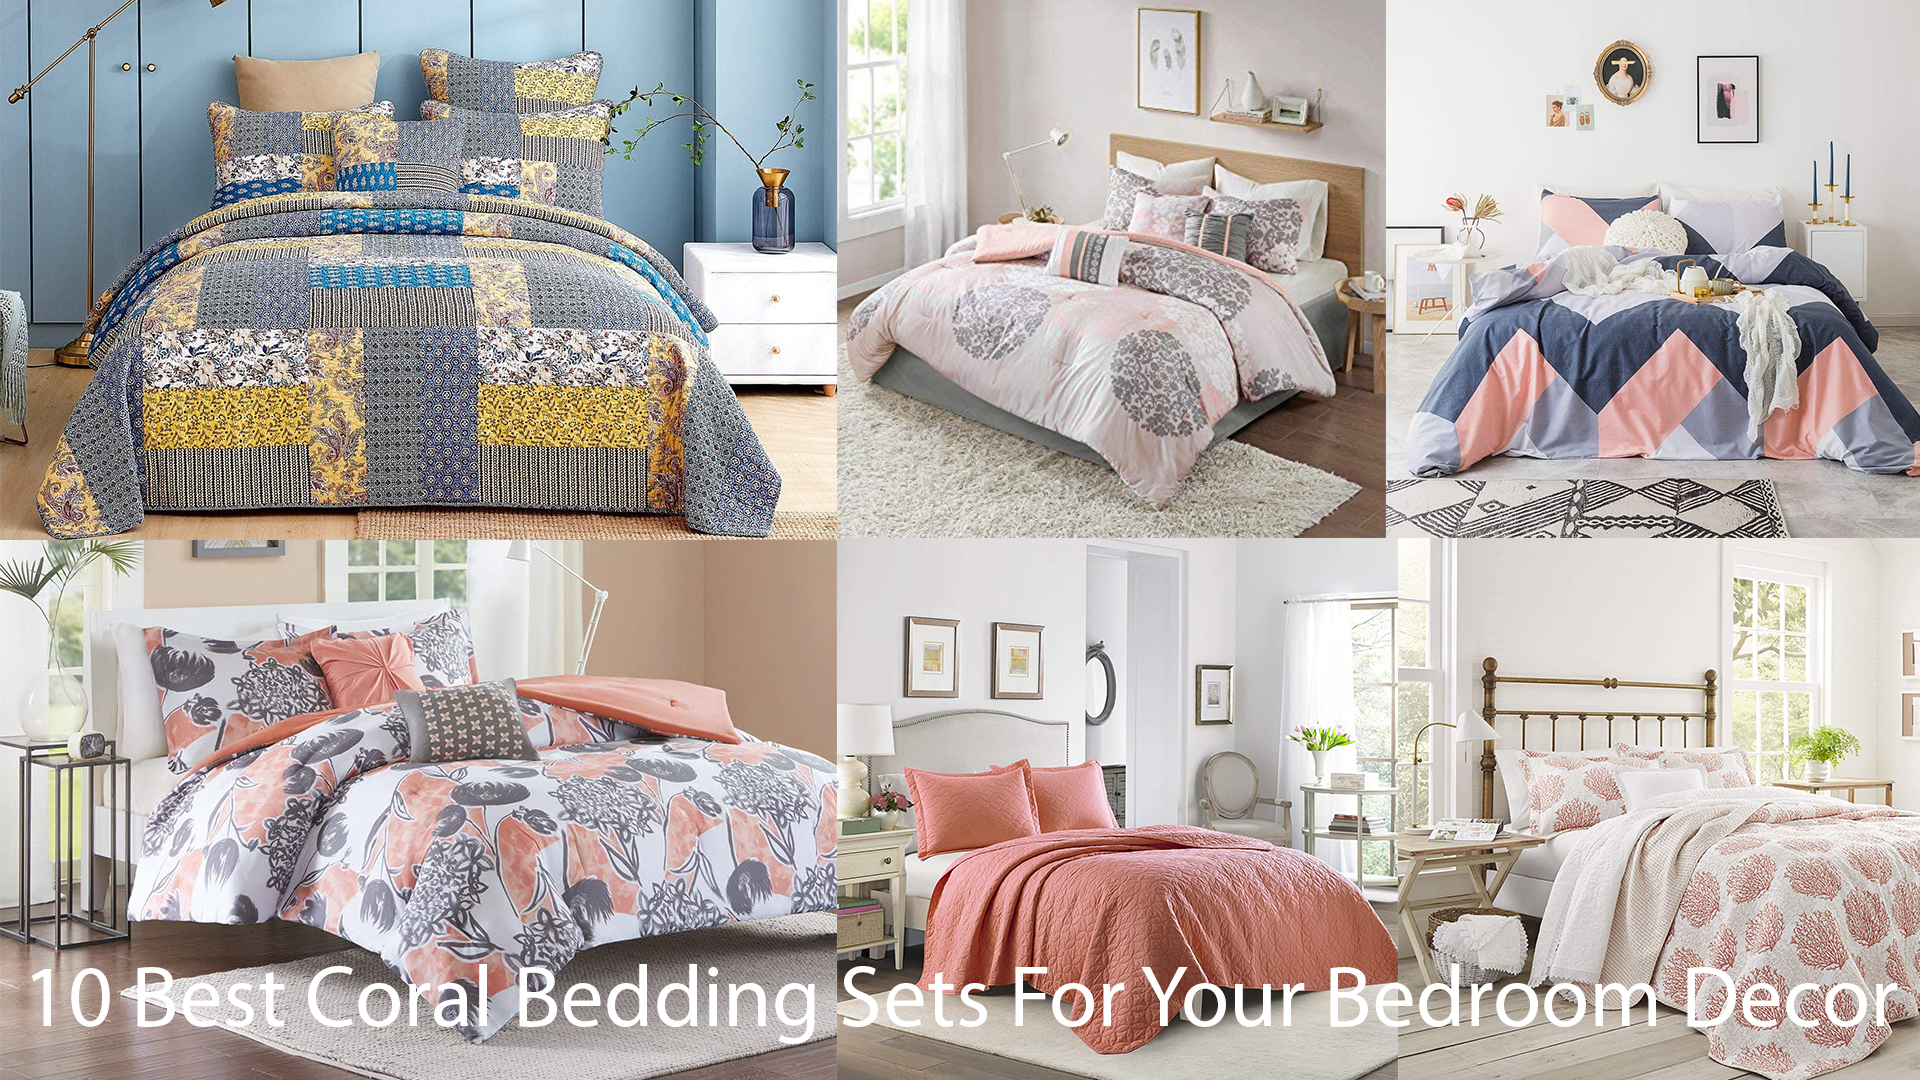 10 Best Coral Bedding Sets For Your Bedroom Decor